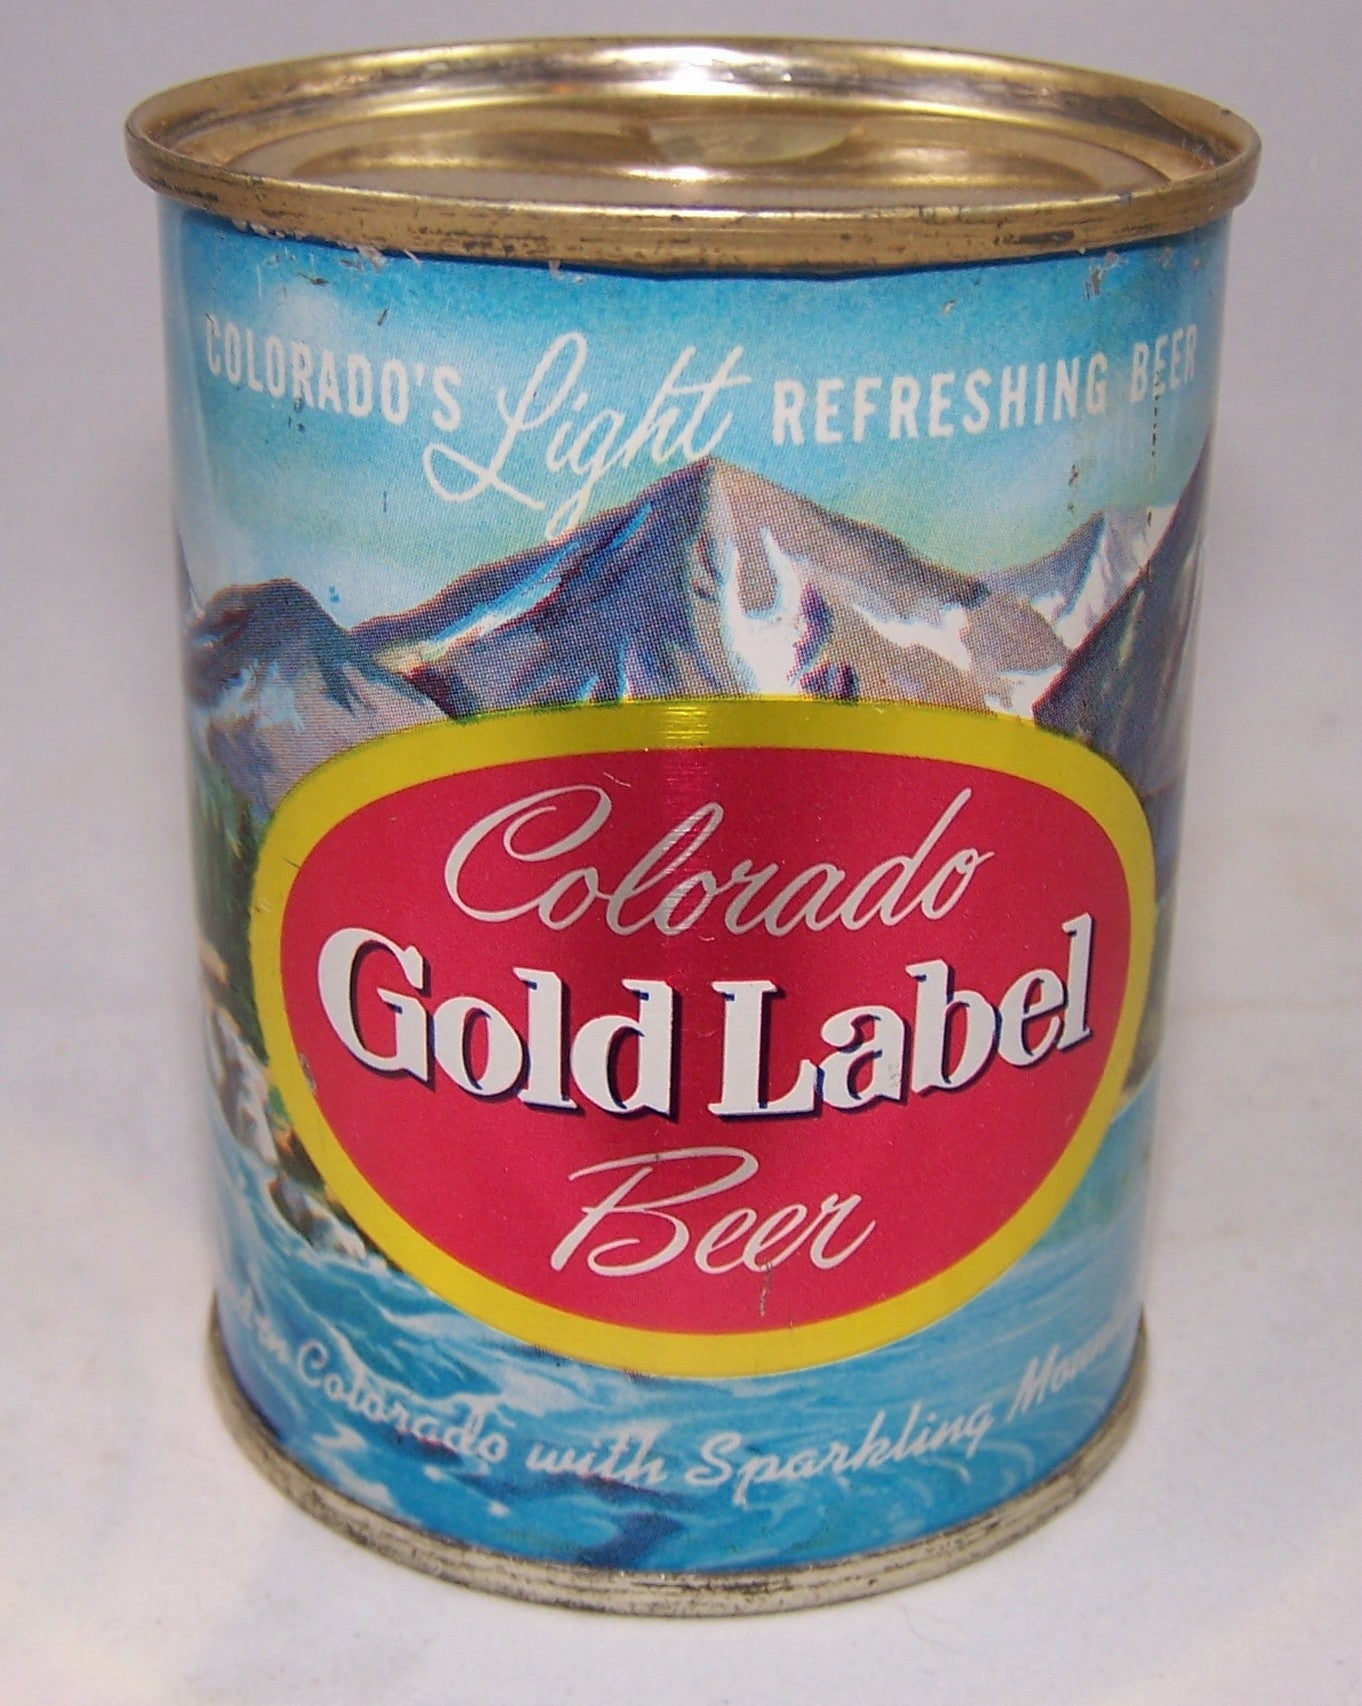 Colorado Gold Label Beer 8 ounce, USBC 241-27, Grade 1/1+ Sold on 10/20/15